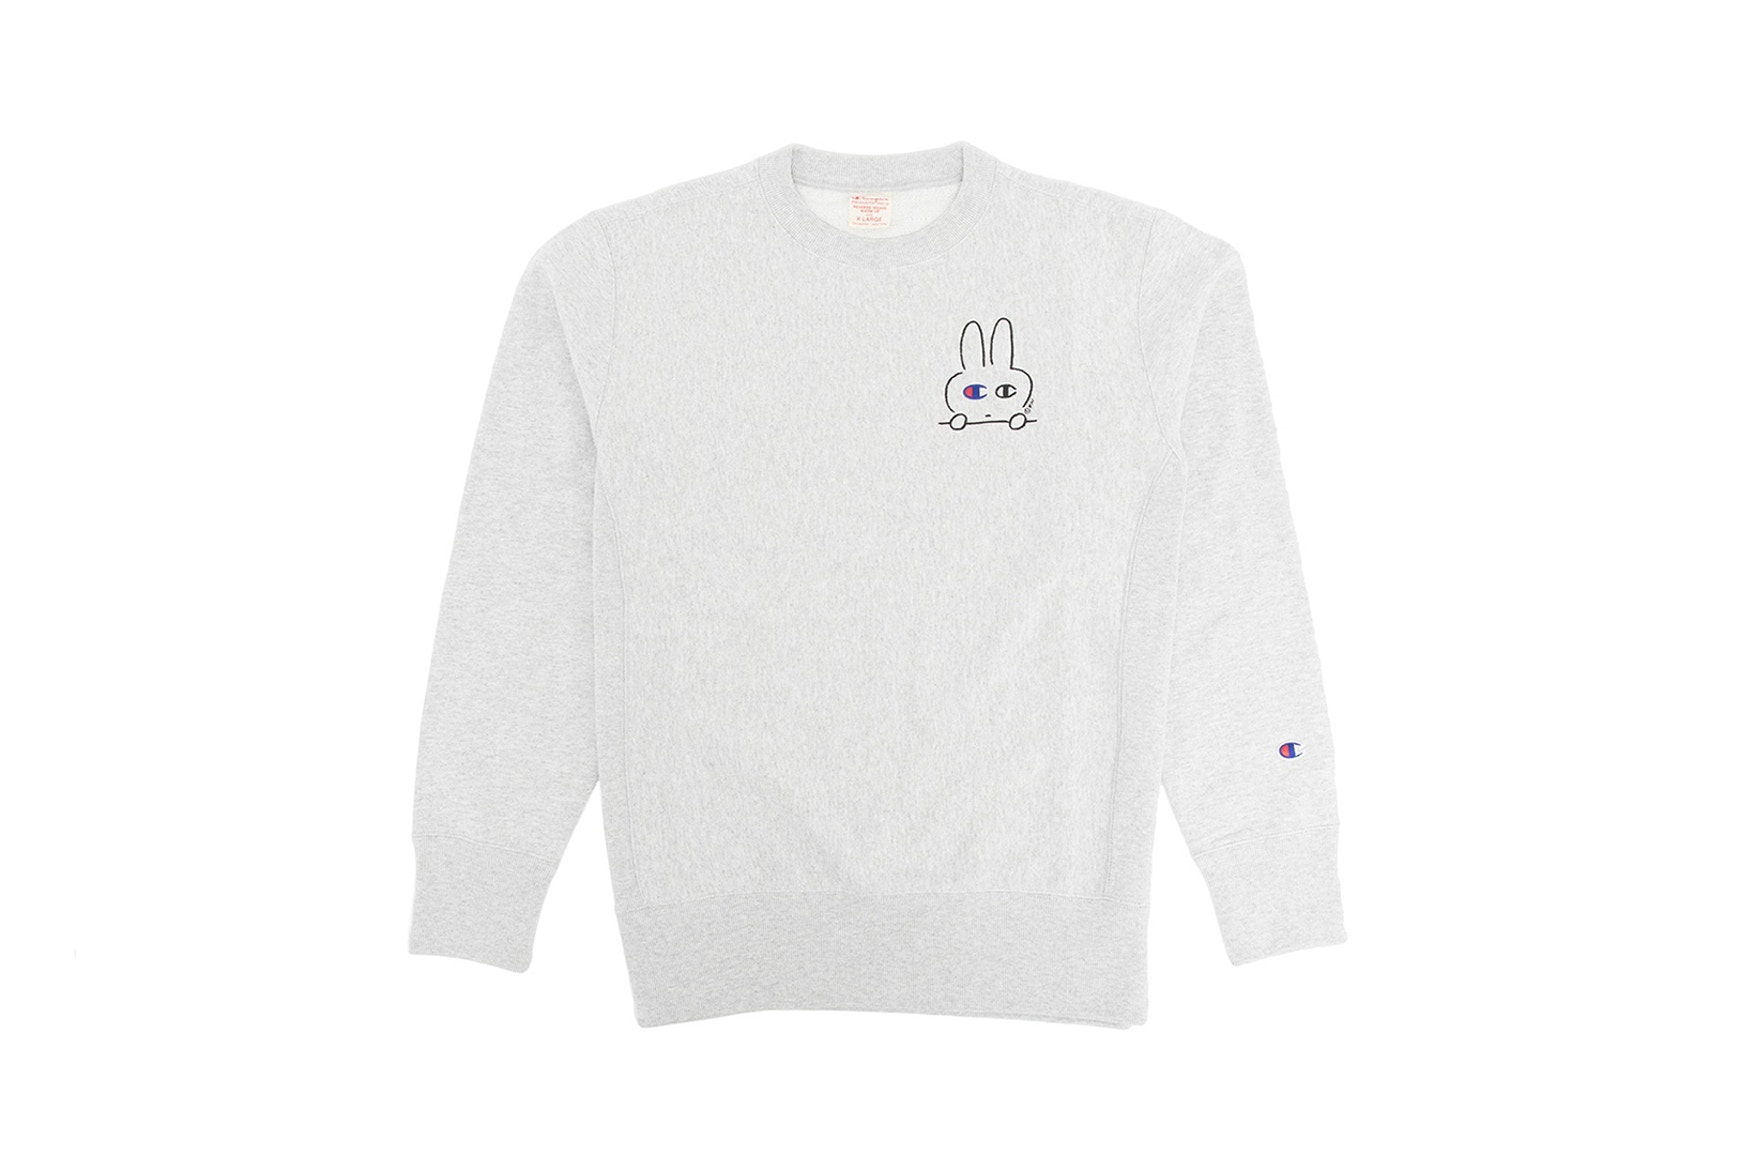 beams-champion-artist-series-collection-h